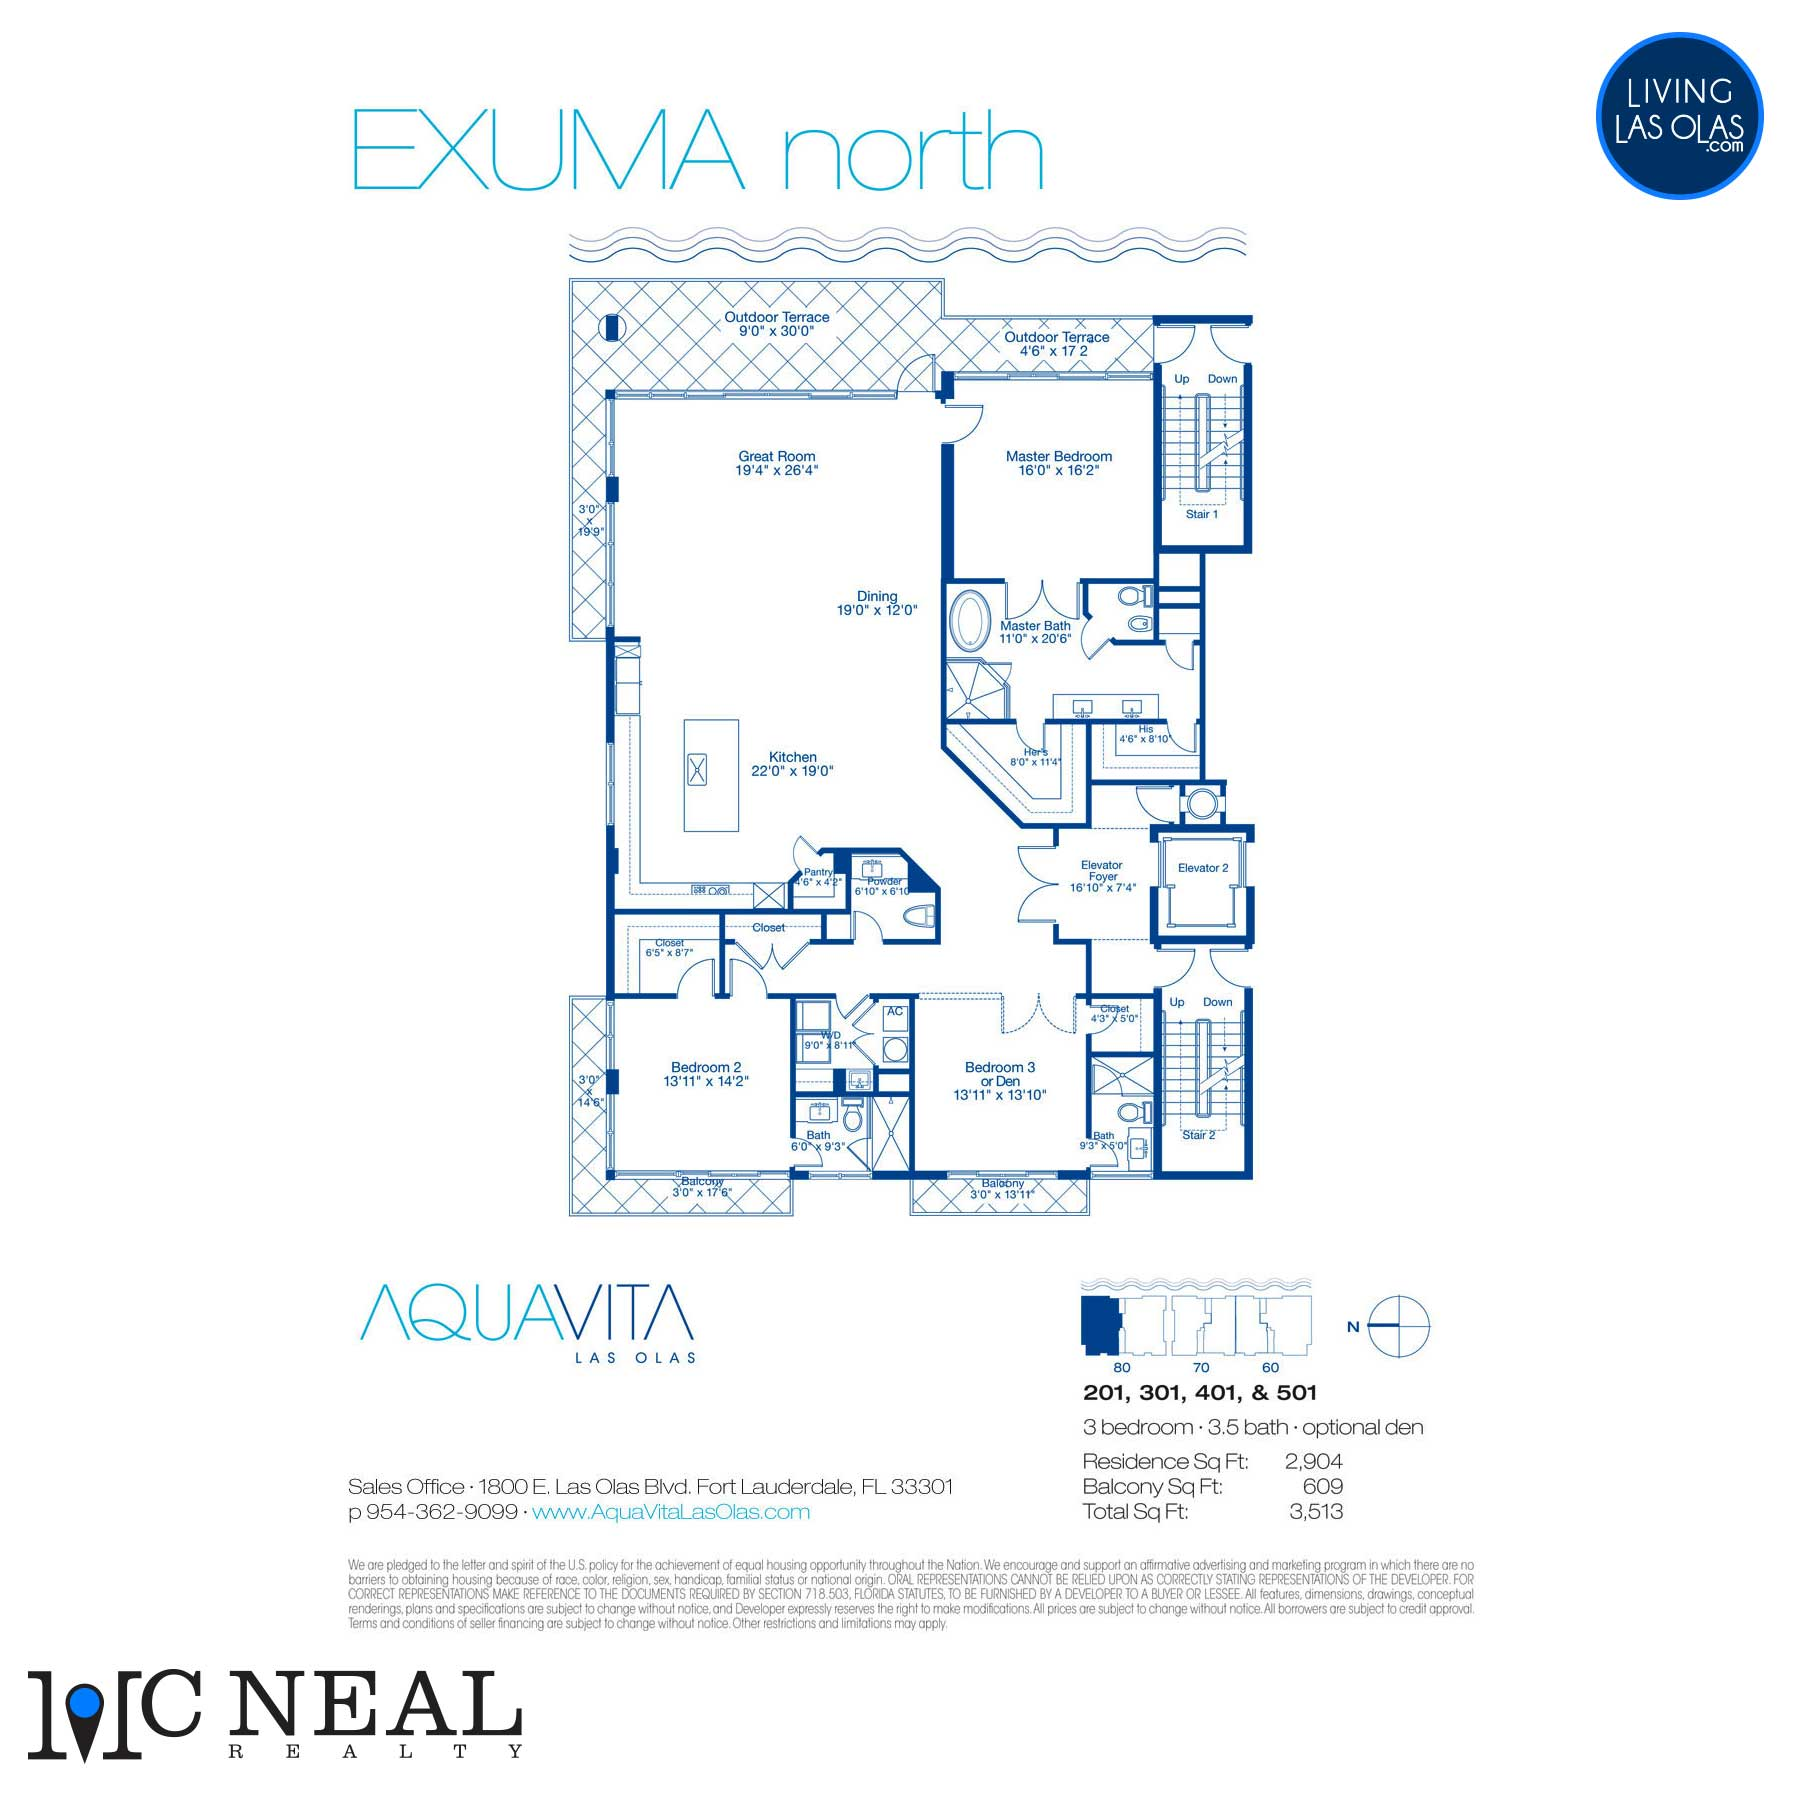 AquaVita Las Olas Floor Plans Exuma N